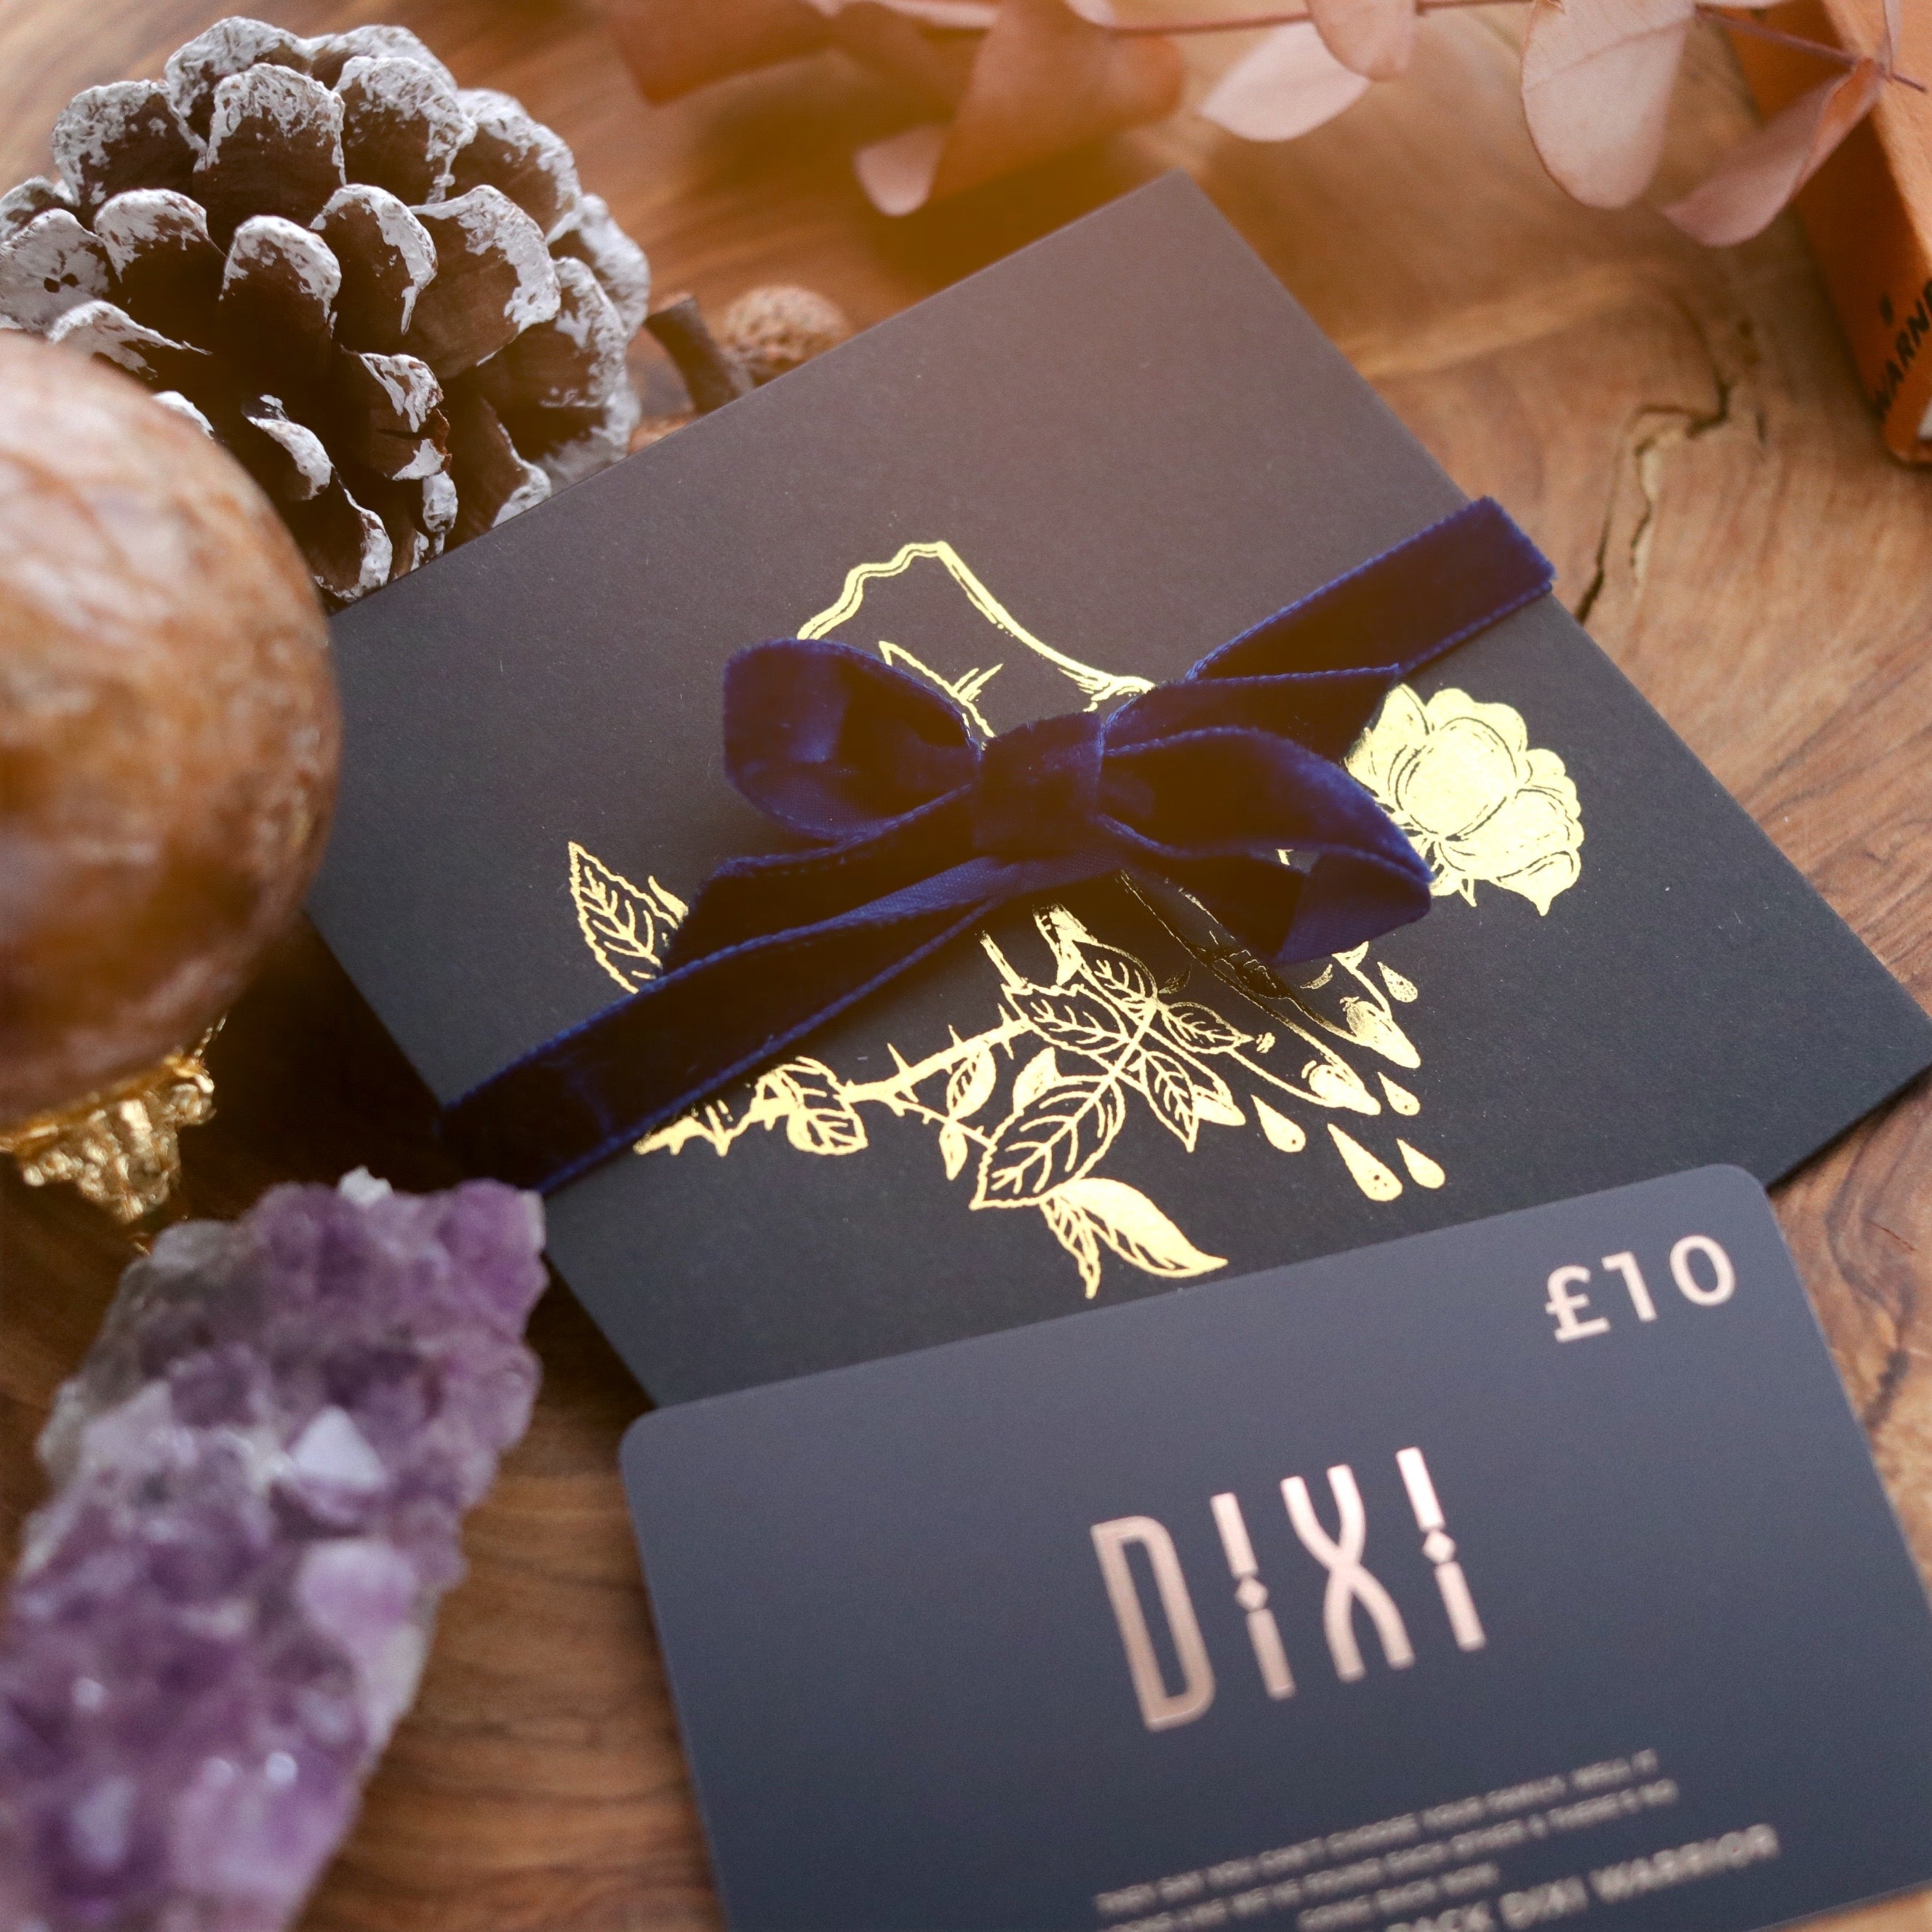 £10 Gift Card With Luxury Envelope